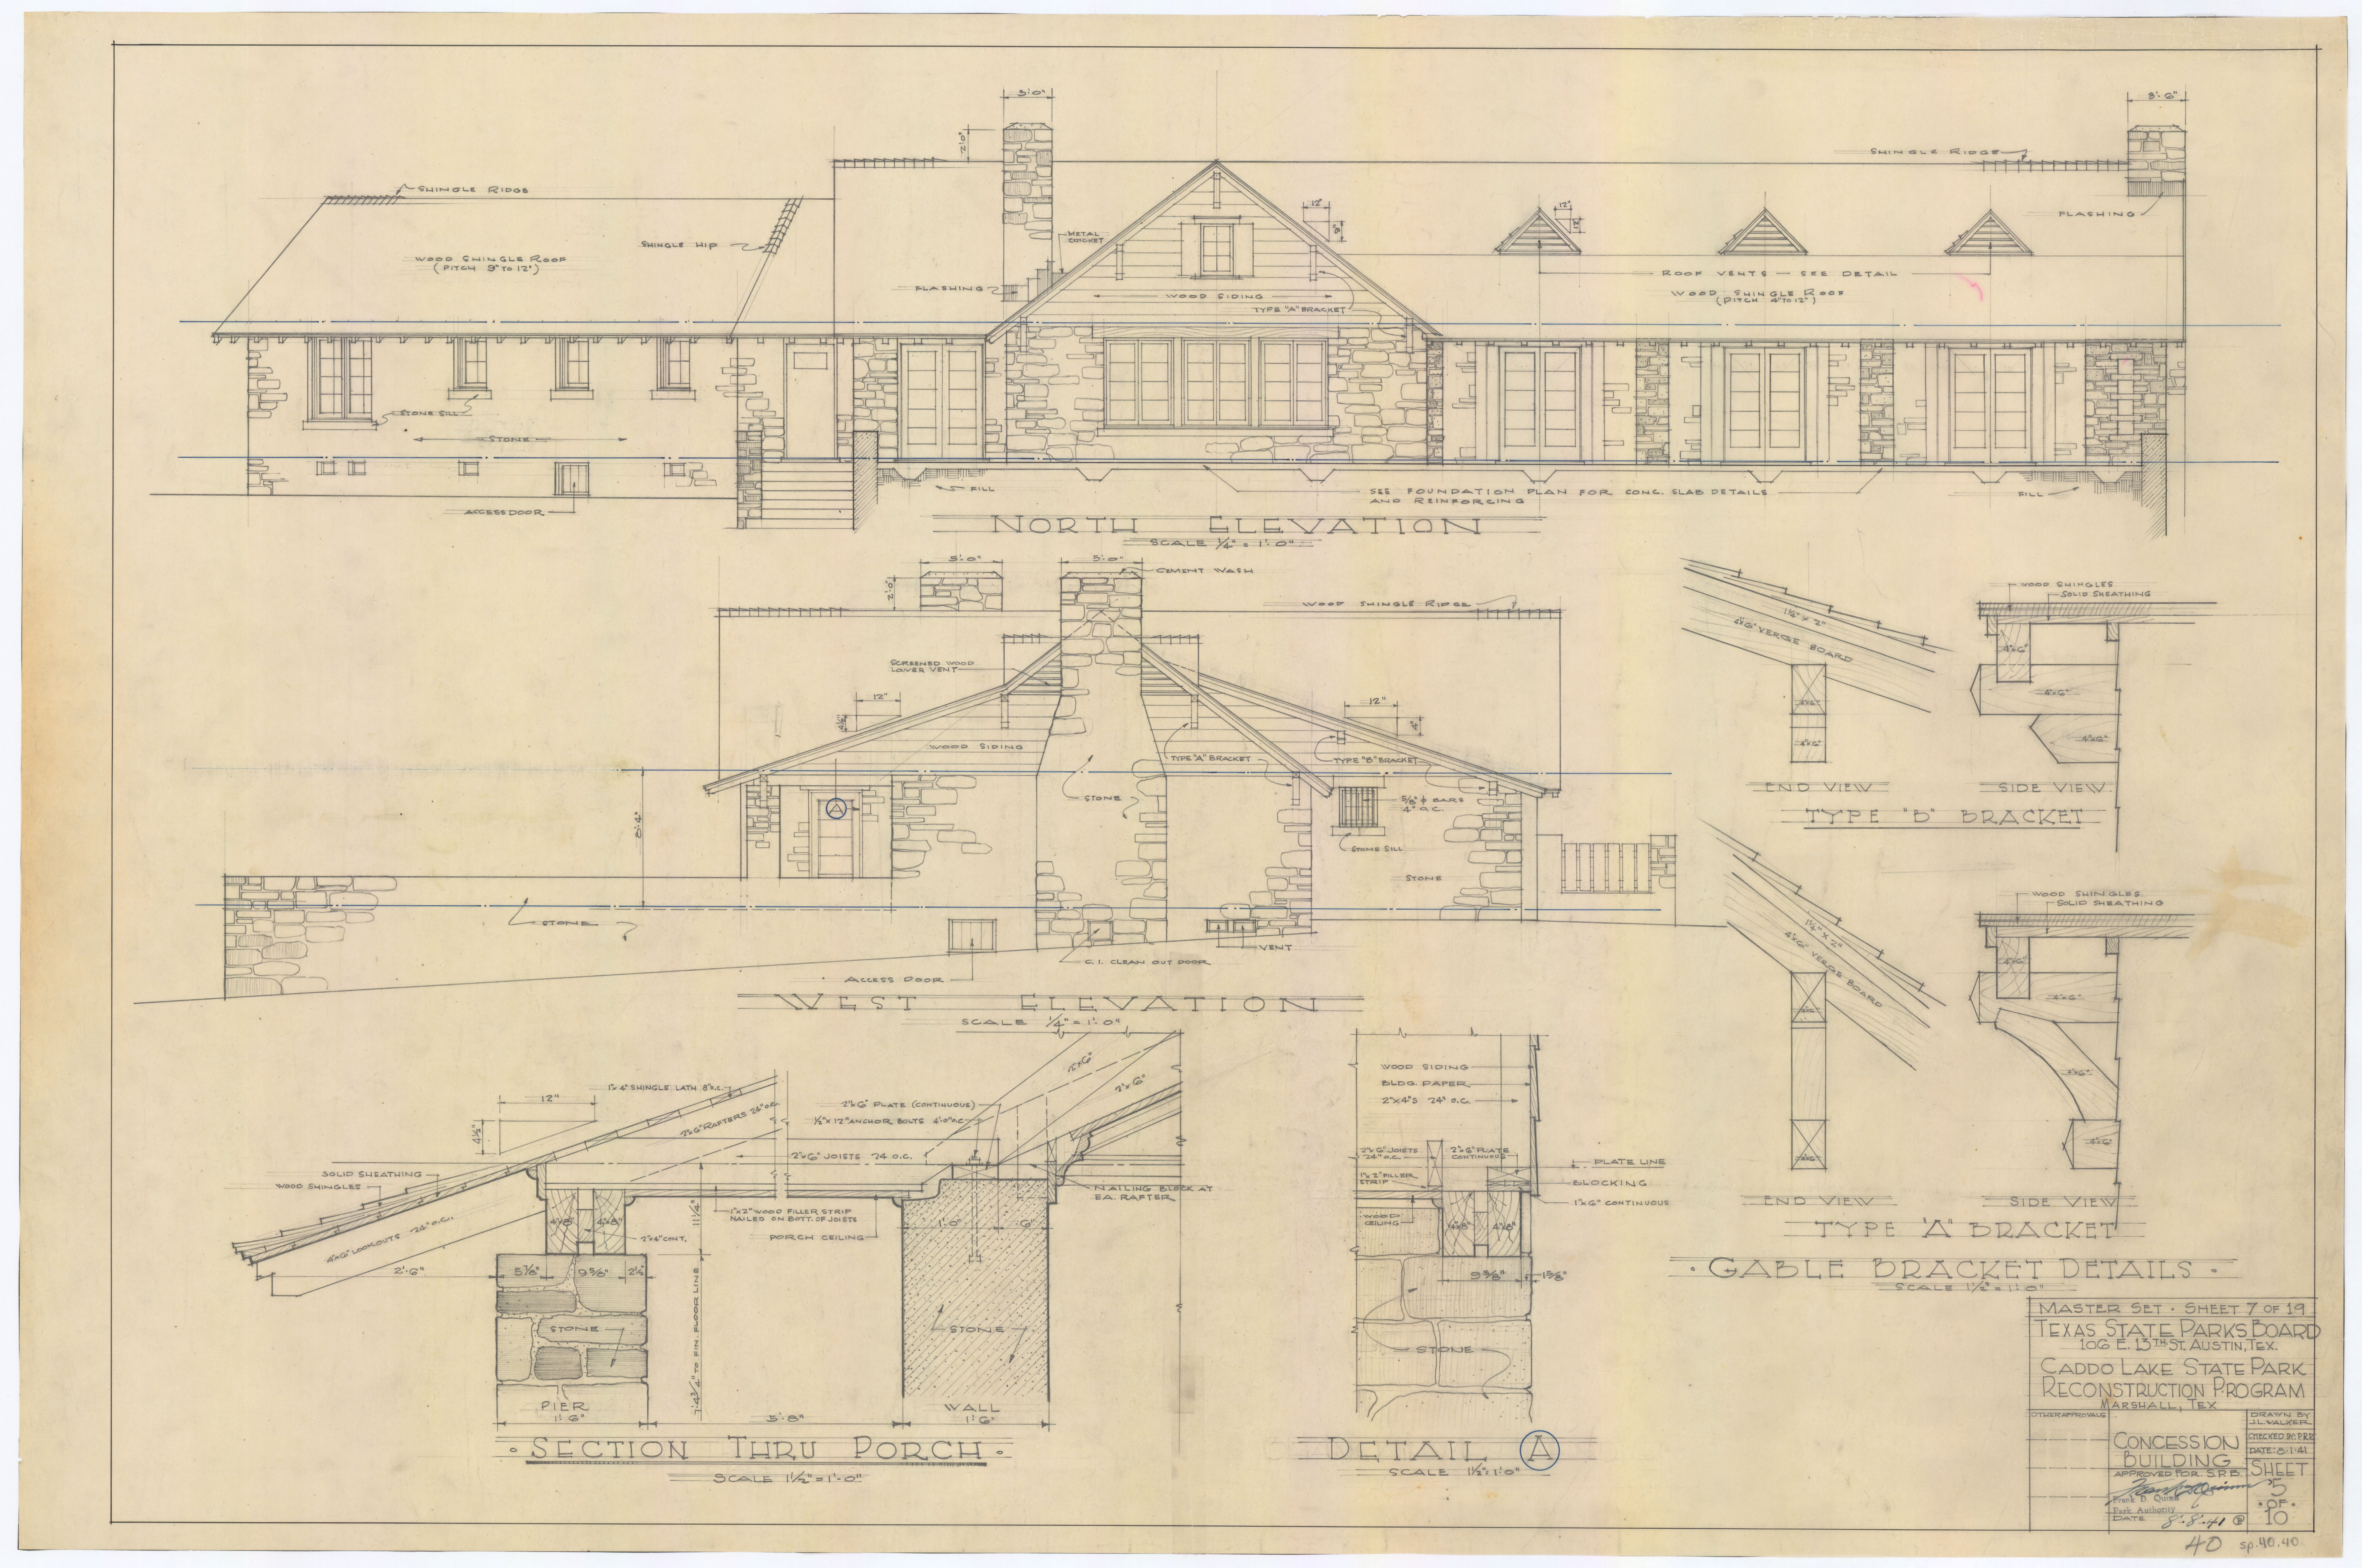 Caddo Lake State Park - Concession Building, Sections - SP.40.40